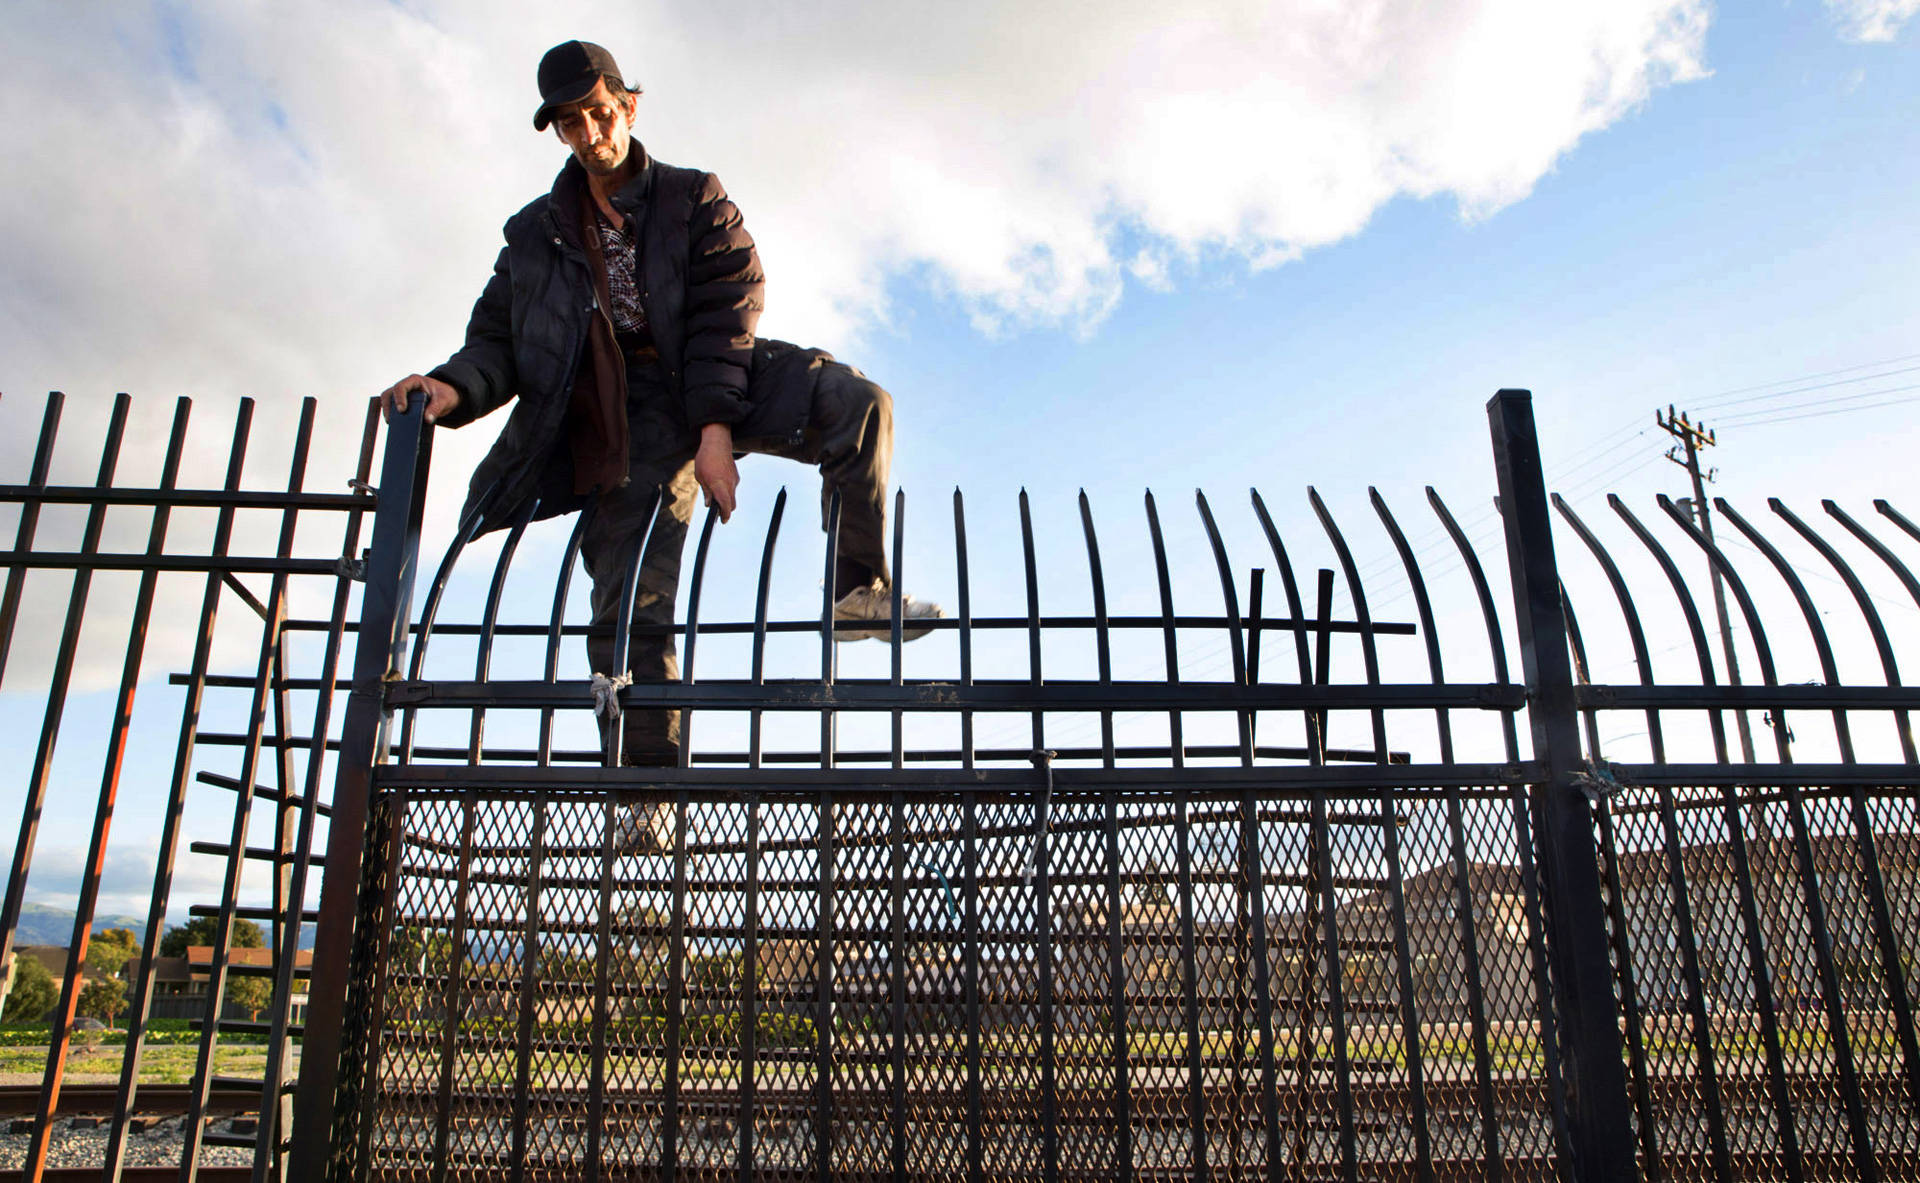 A man climbs over a fence bordering the railroad tracks that separate Chinatown from the rest of downtown Salinas. It's a common route for many Chinatown residents since accessible walking routes in and out of the neighborhood are scarce. Sarah Craig/KQED